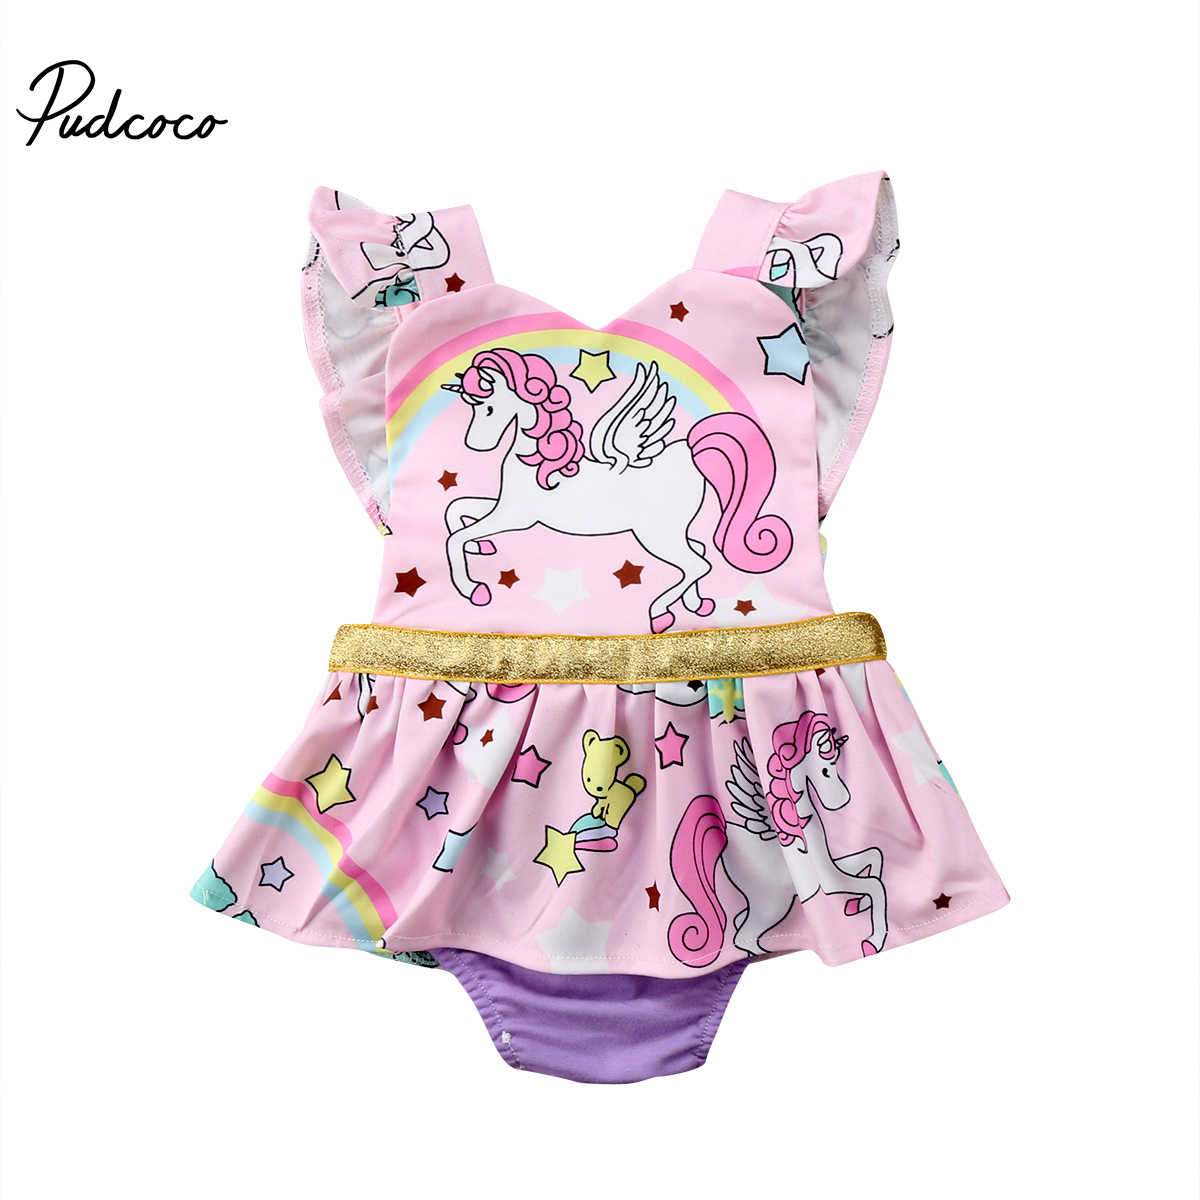 c117765c2868 Detail Feedback Questions about Newborn Baby Girls Romper 2018 Cartoon  Unicorn Sequins Romper Princess Baby Girls Clothing Birthday Party Infant  Girls ...